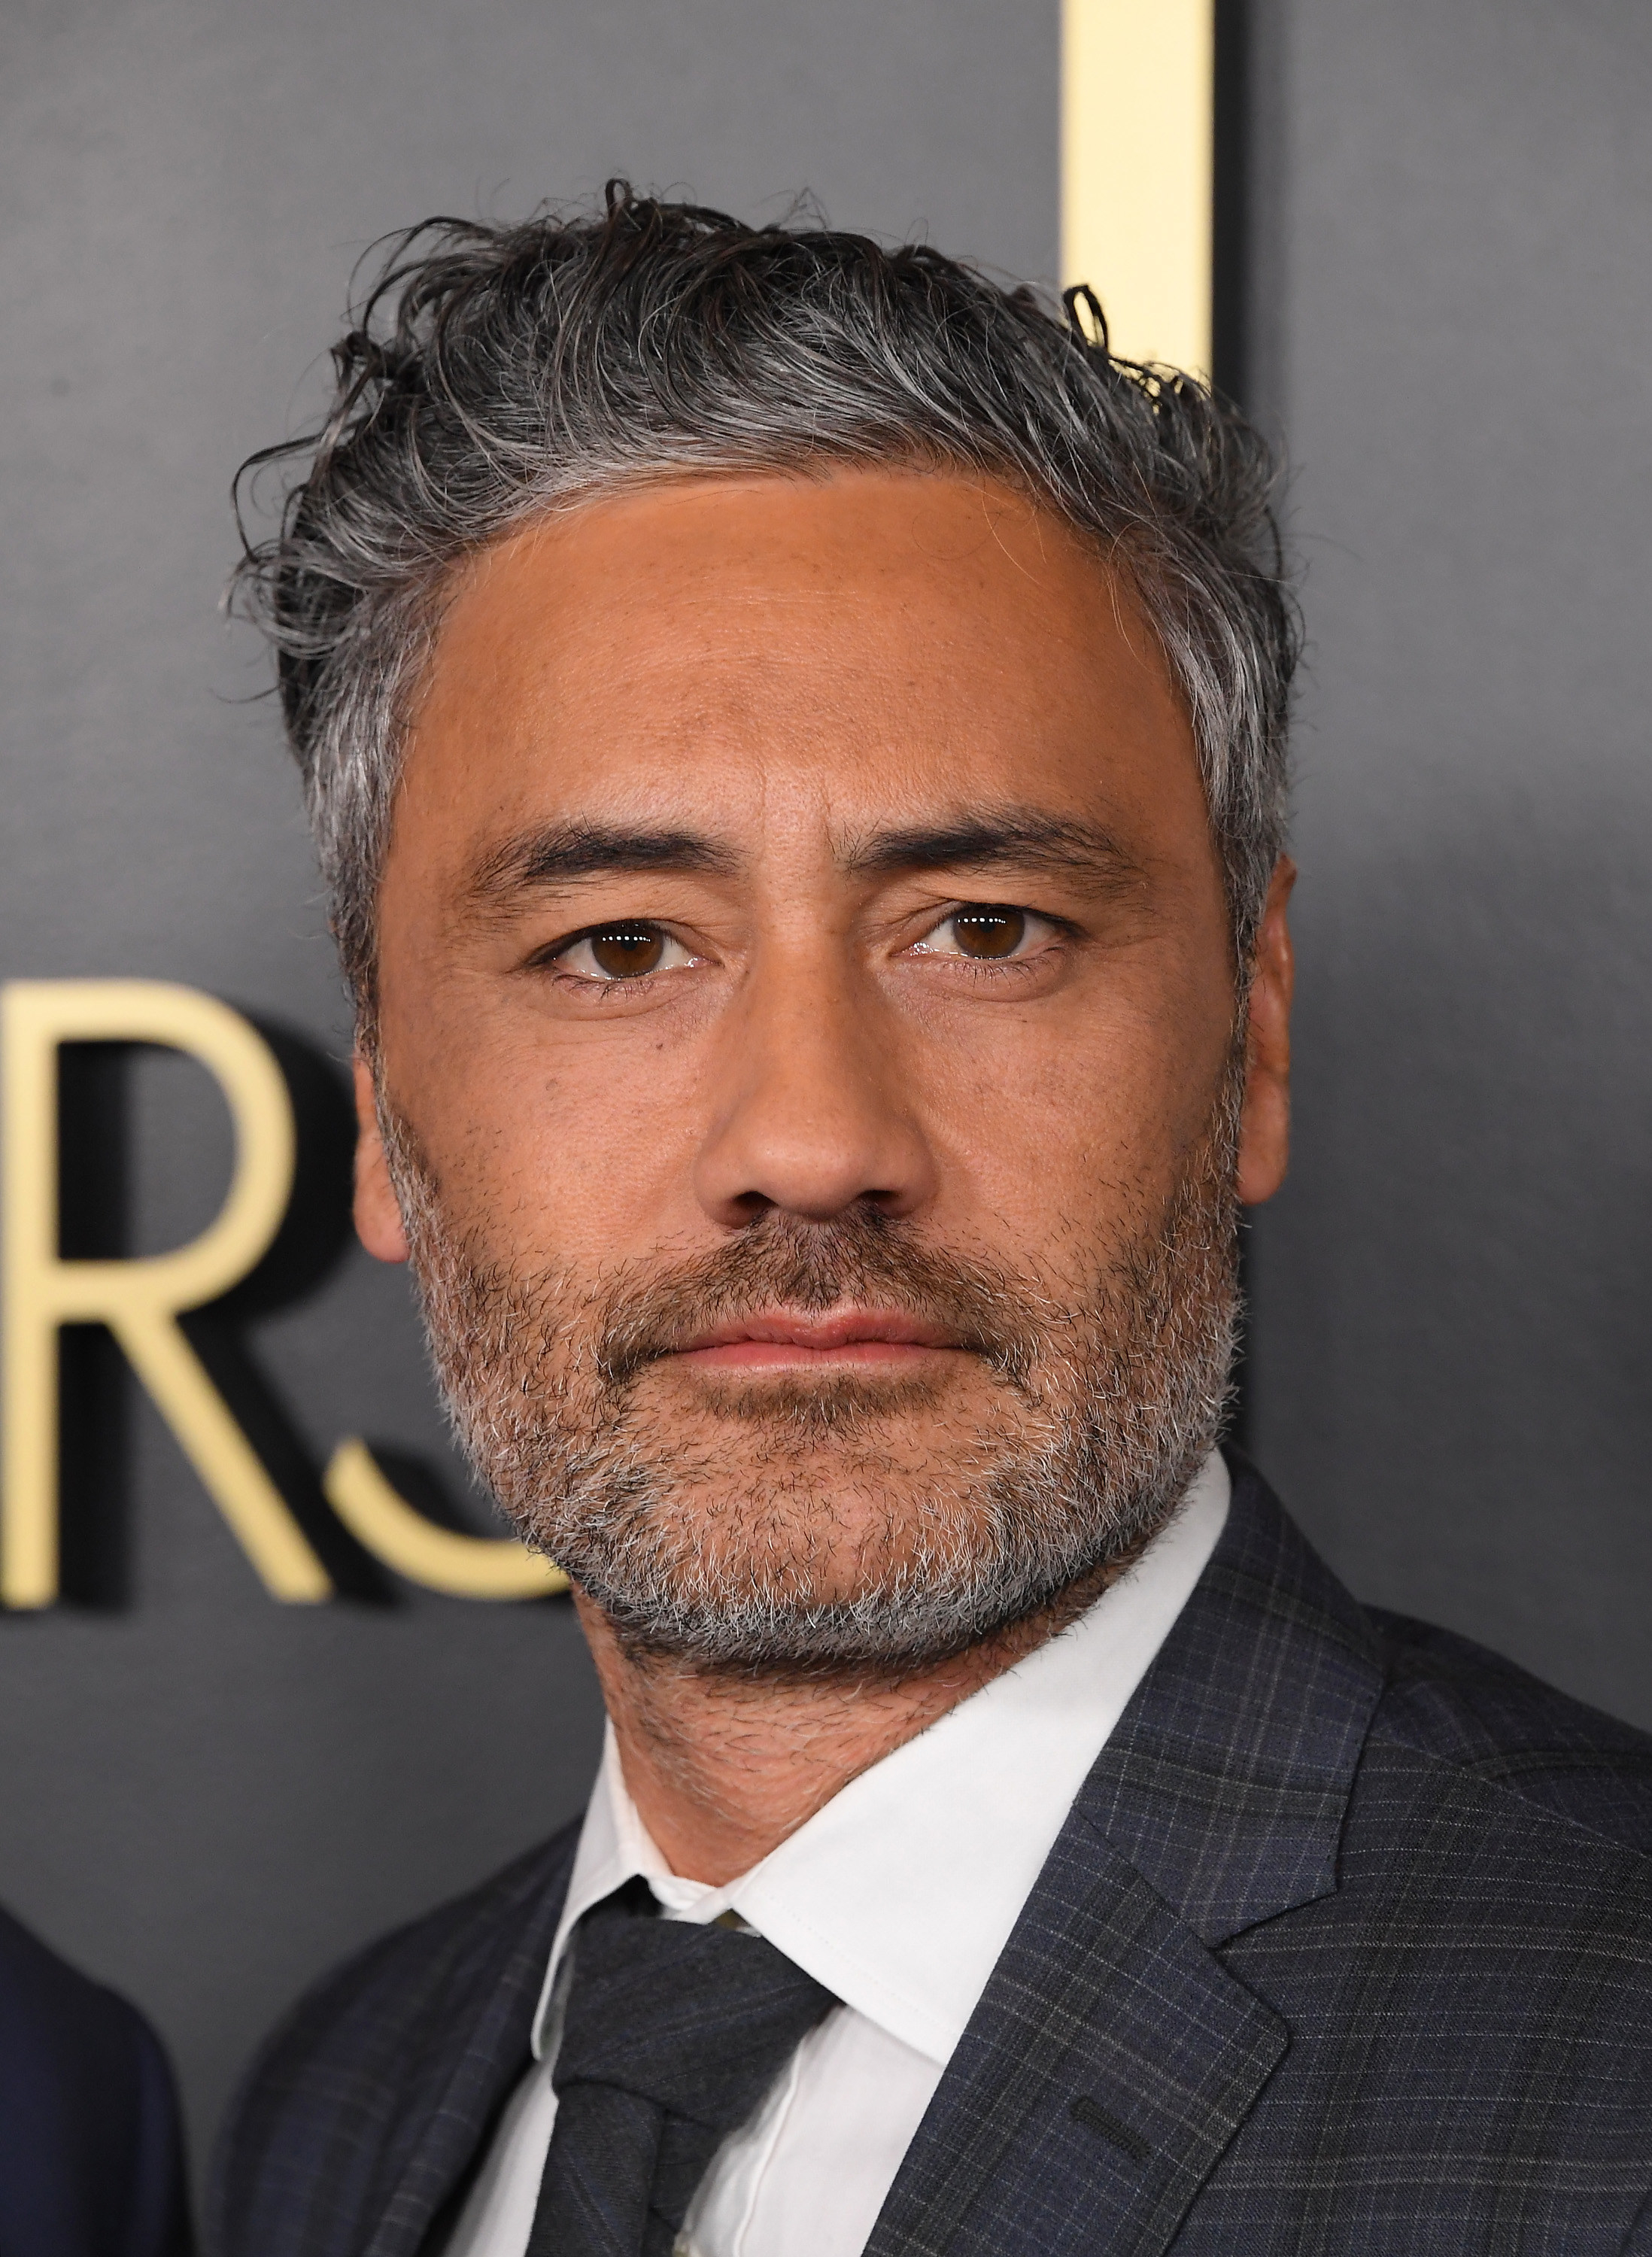 Taika Waititi looks directly at the camera in a suit at an award show